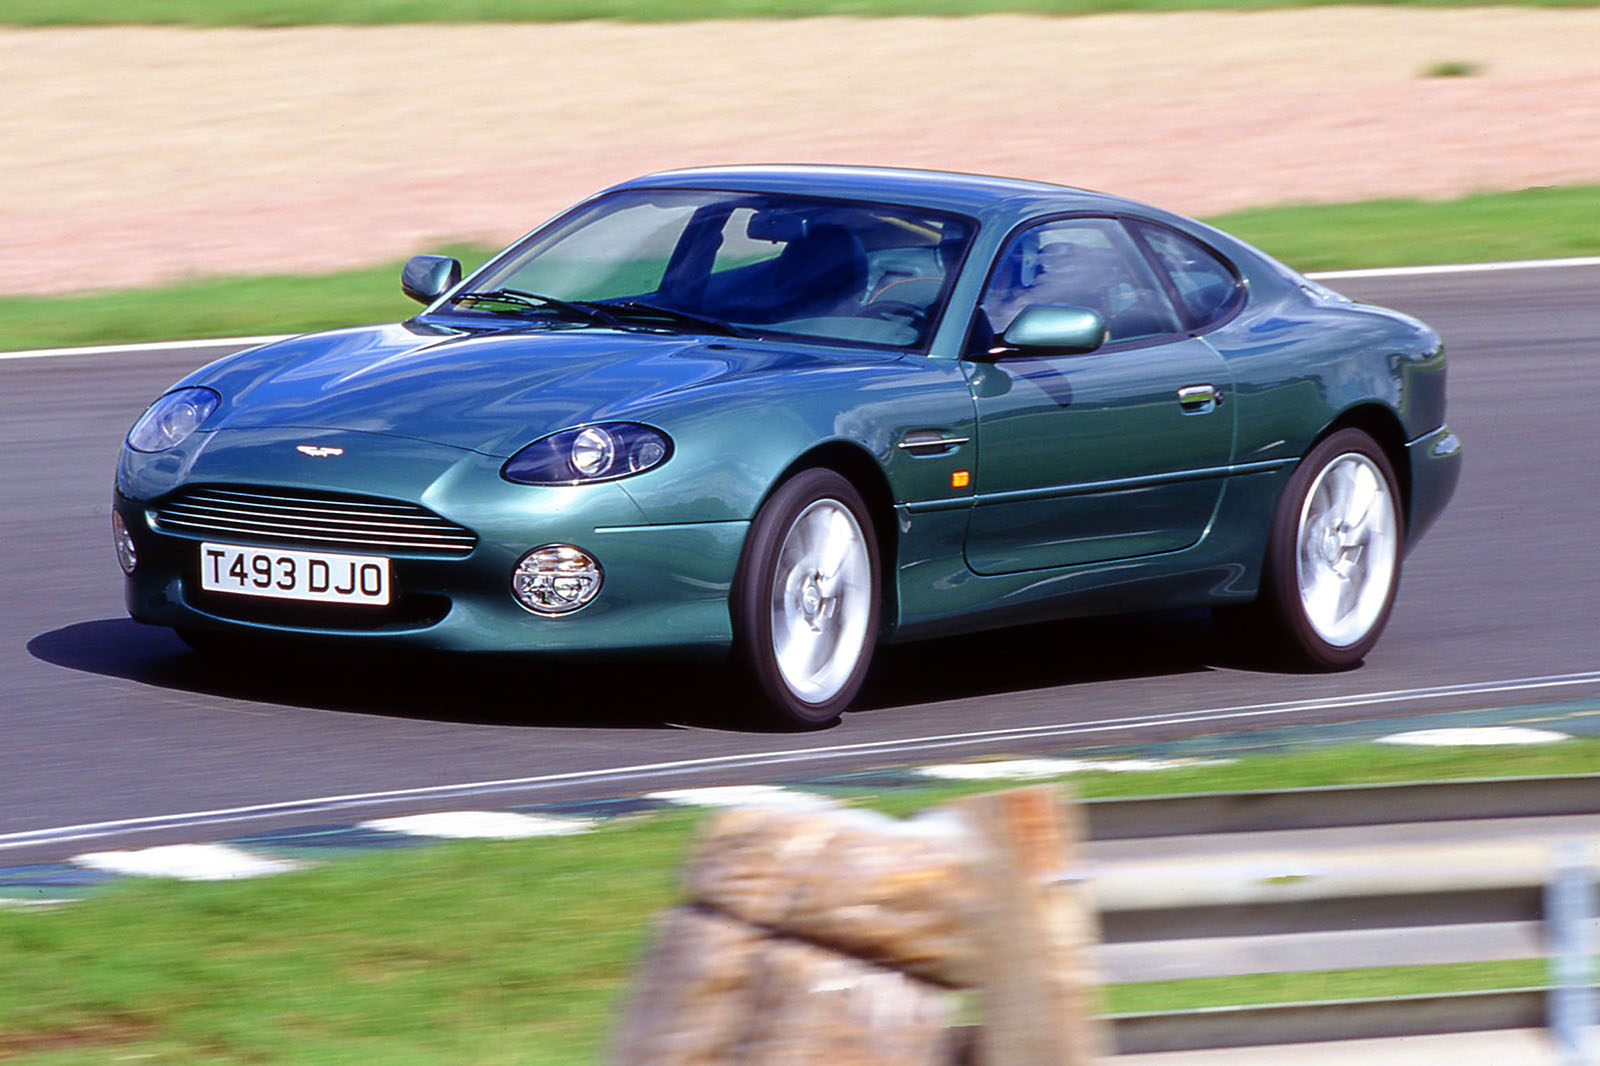 aston martin db7 | used car buying guide | autocar